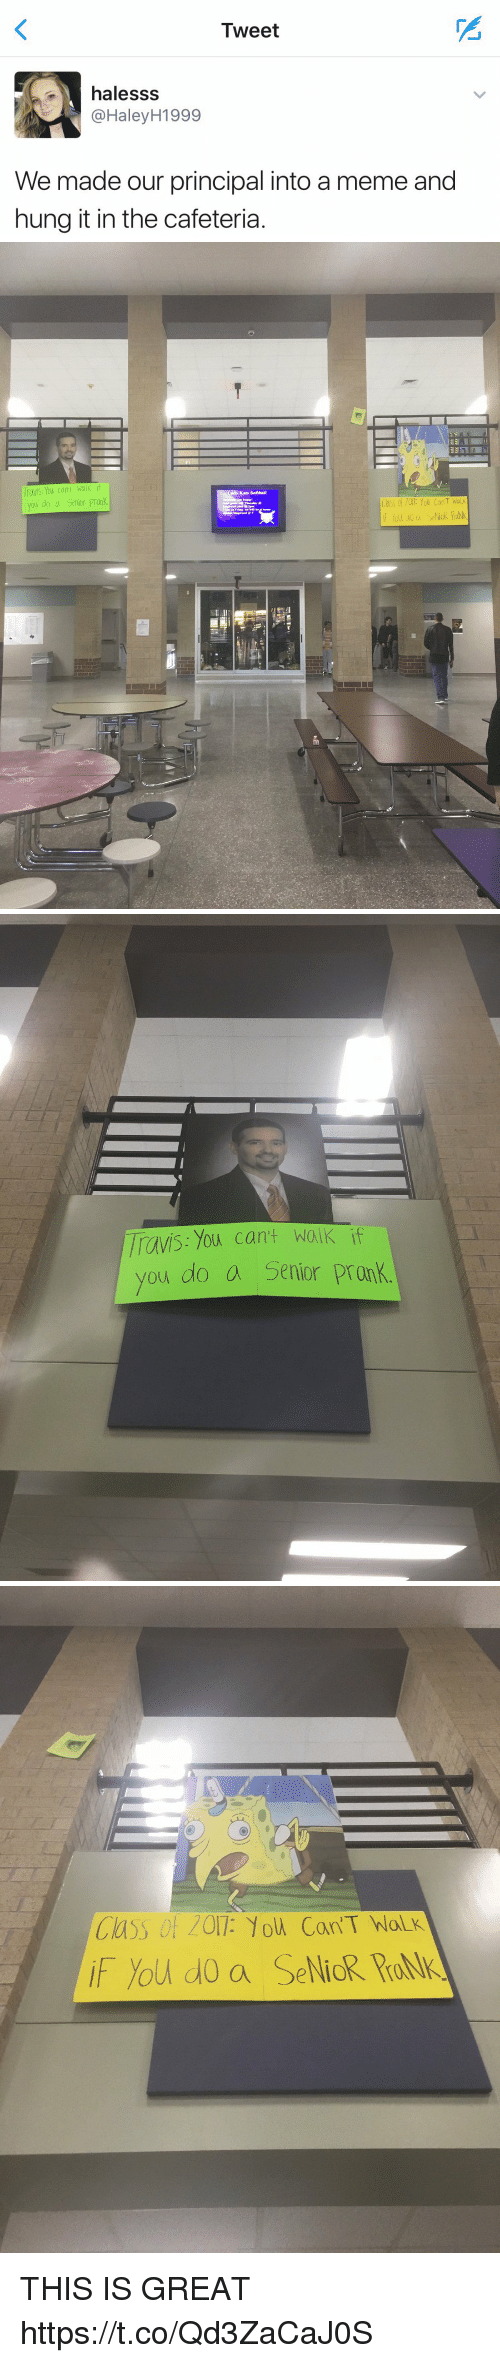 Meme, Principal, and Girl Memes: Tweet  halesss  @Haley 1999  We made our principal into a meme and  hung it in the cafeteria   You can't waiK if  you do a Senior Pronk.  Kats Softball  f you do a SeNiOR Ralk   Travis: You can't Walk it  you do a Senior Pronk.   Class of 2011: 10W Cam T Nolk  you do a SeNick. THIS IS GREAT https://t.co/Qd3ZaCaJ0S